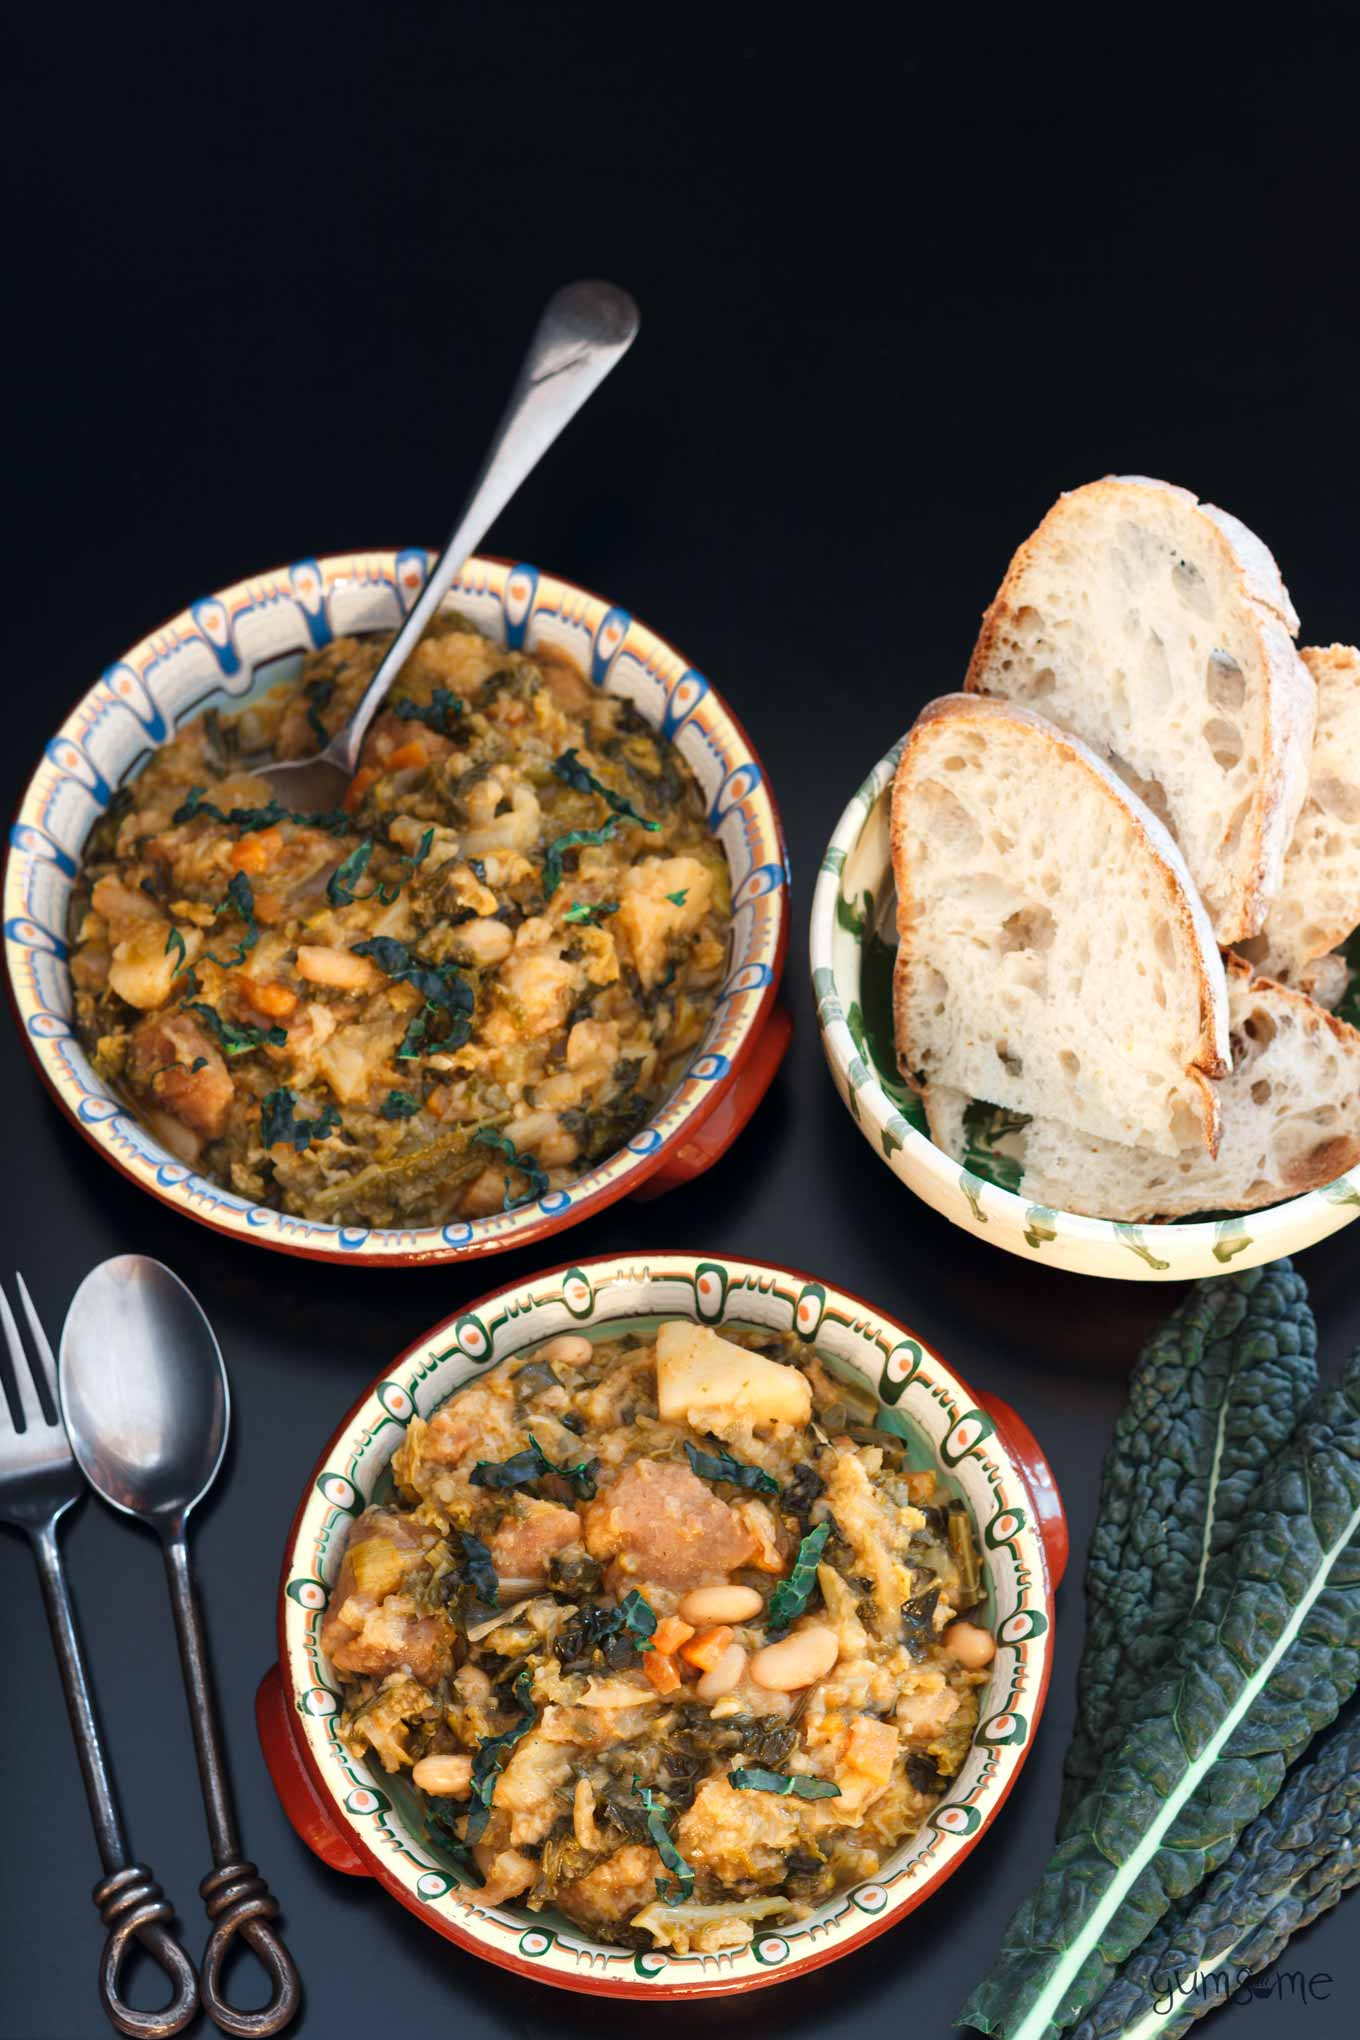 two dishes of ribollita (Tuscan bread soup), some bread, and some cavolo nero | yumsome.com